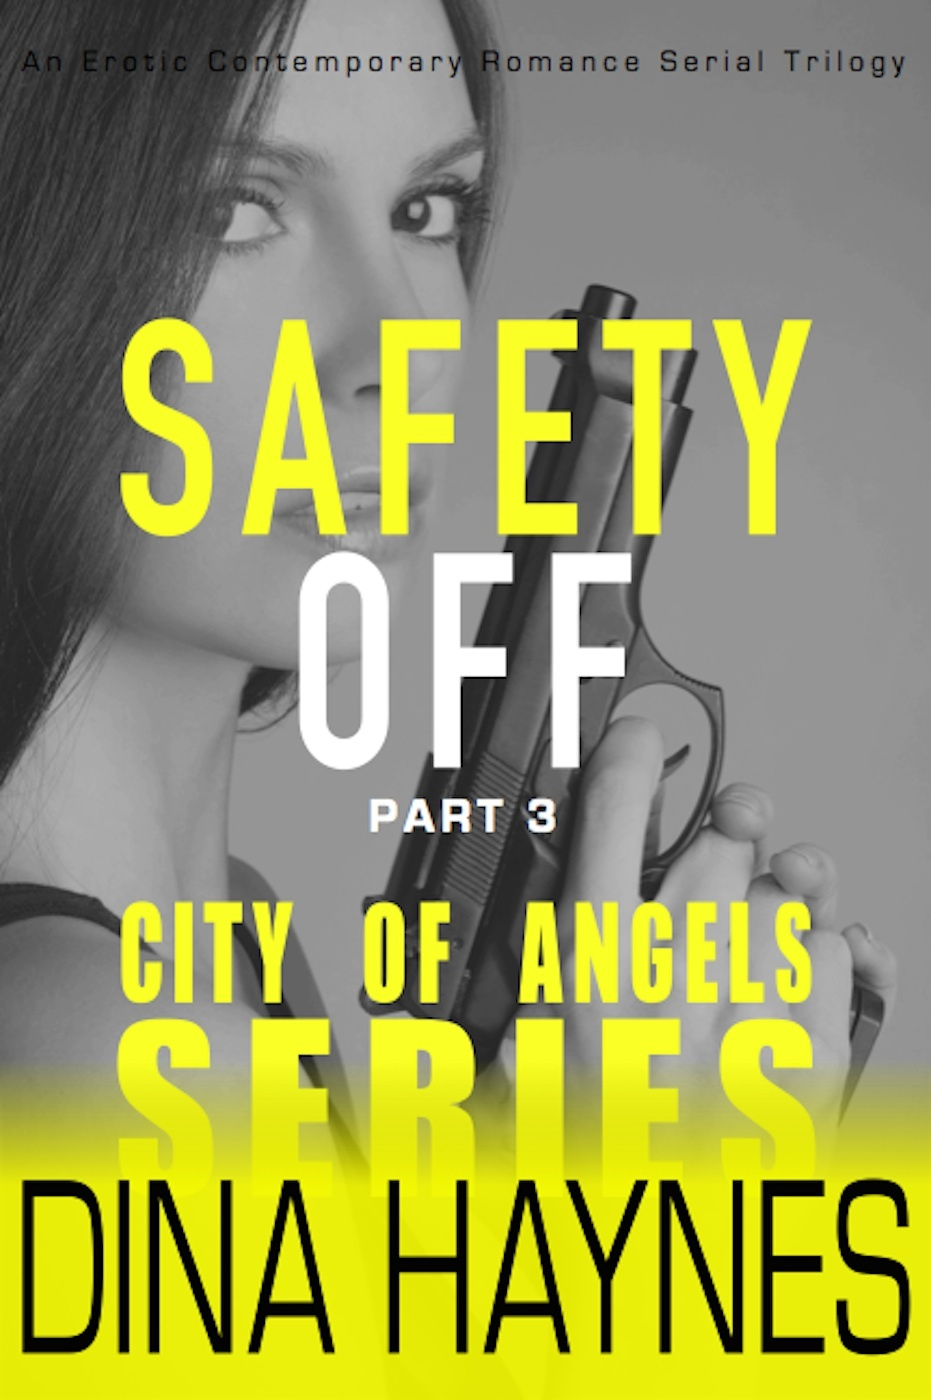 Safety Off: Part 3, City of Angels Series (Safety Off, #3) Dina Haynes